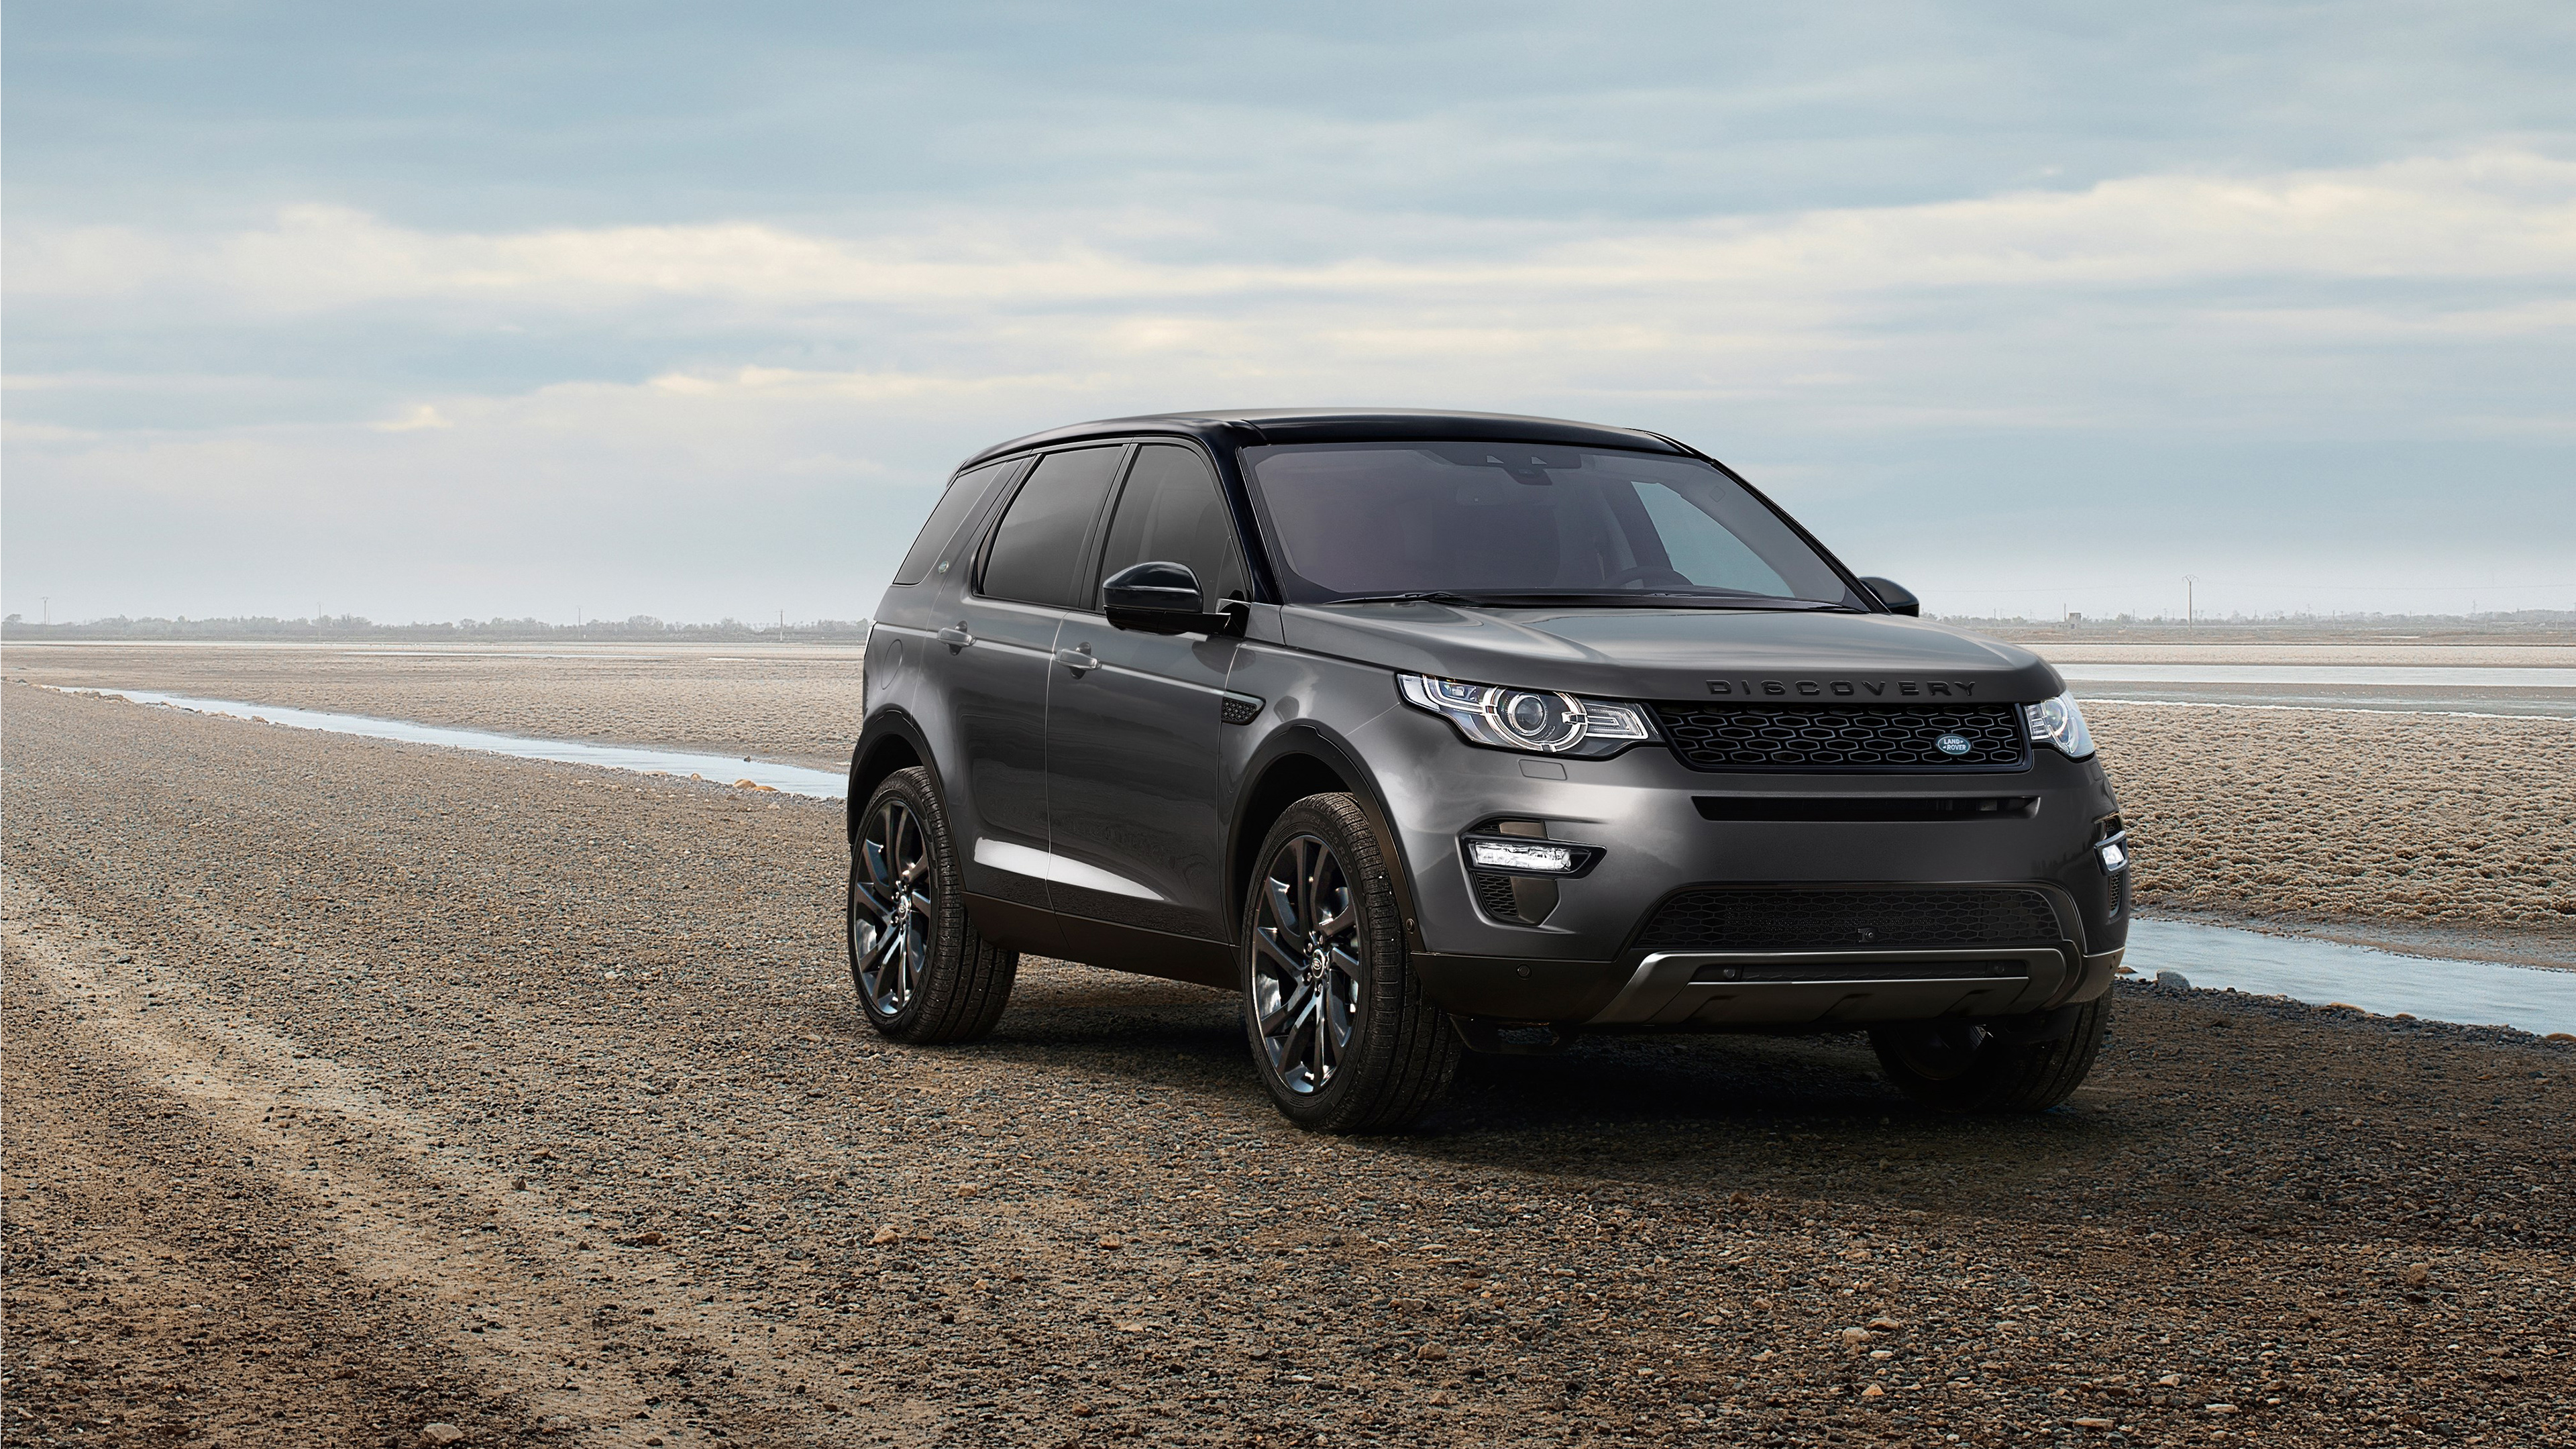 Latest Range Rover Sport Car >> 2017 Land Rover Discovery Sport 4K Wallpaper | HD Car Wallpapers | ID #6862